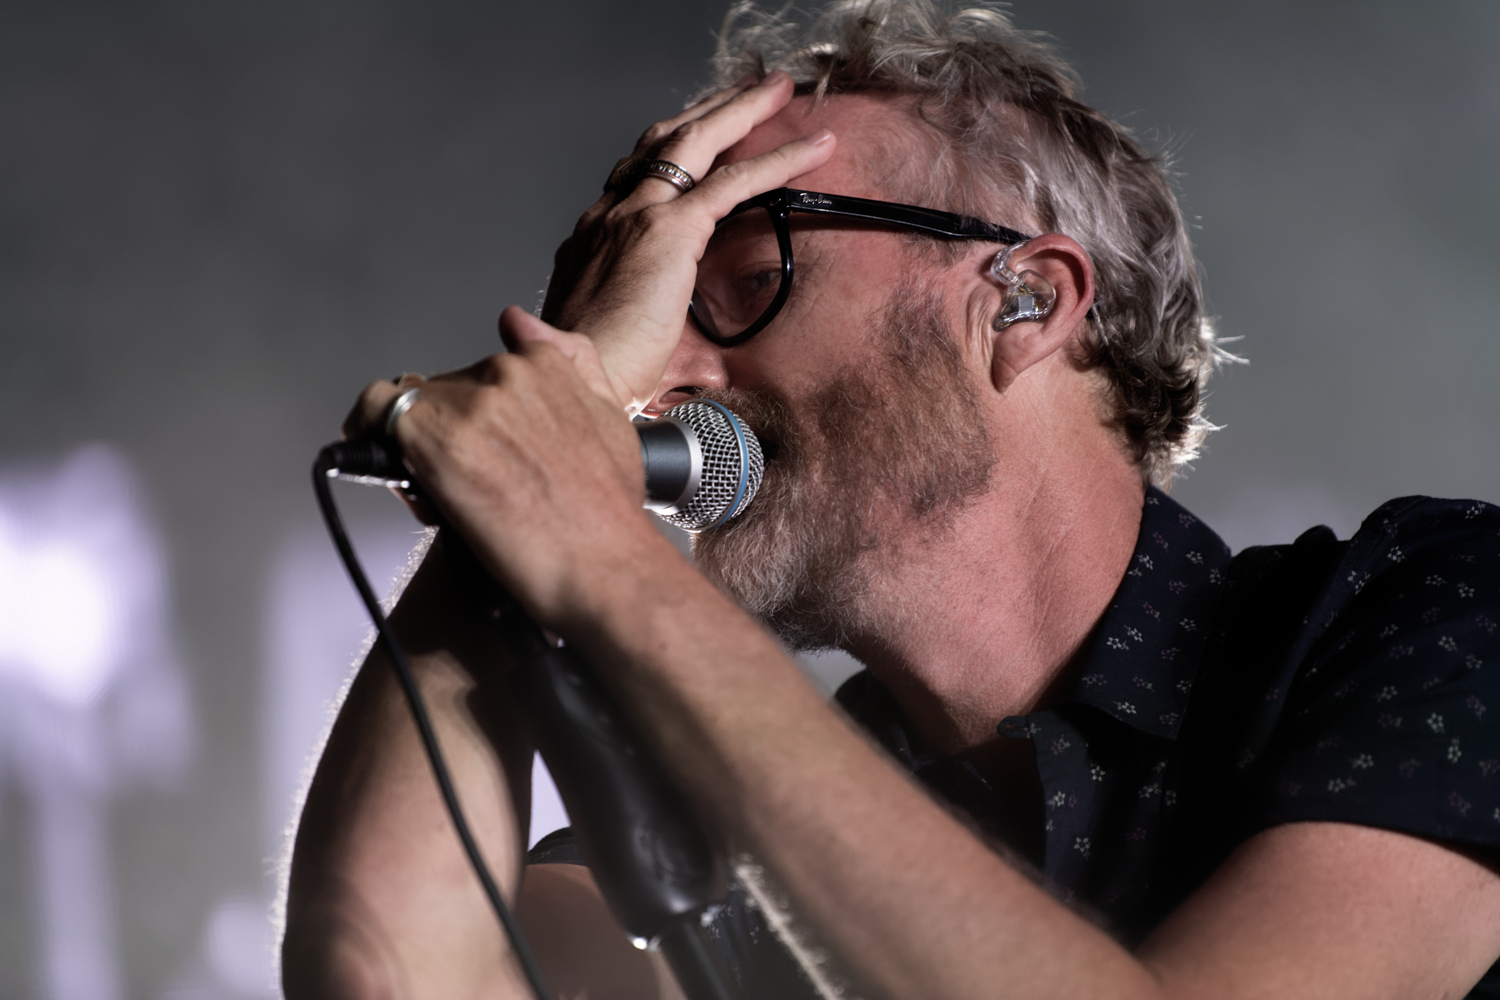 The National